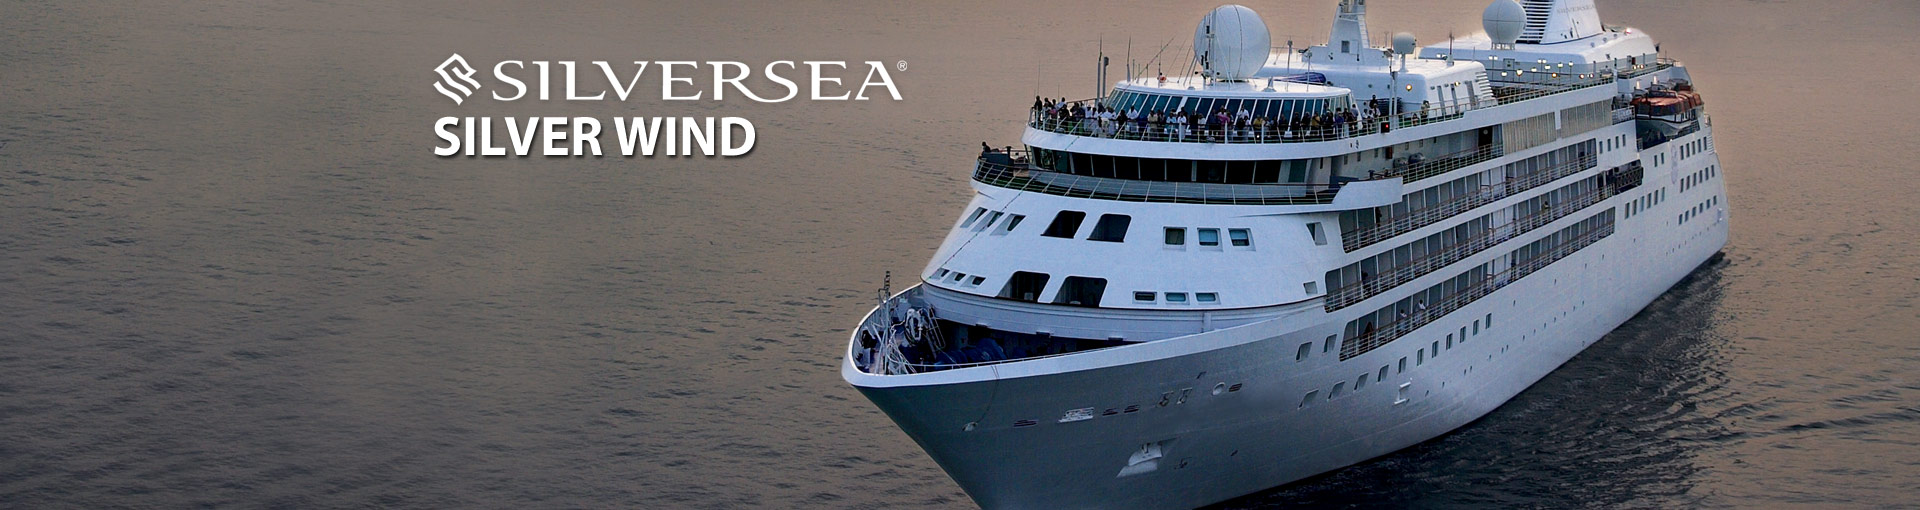 Silversea Cruises Silver Wind cruise ship